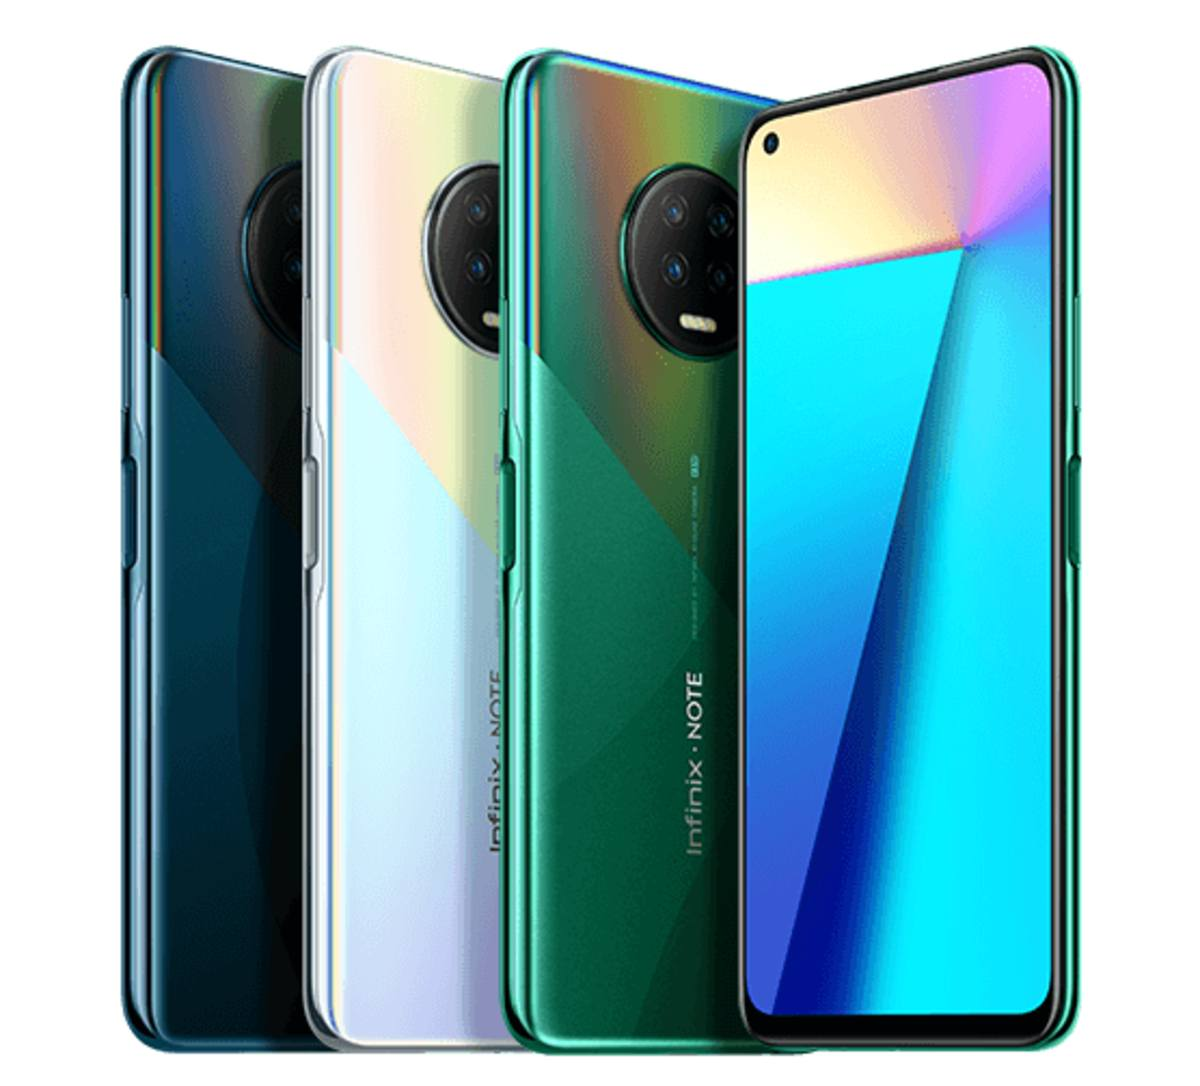 Infinix Note 7, Note 7, Infinix Note 7 price in Nigeria, Infinix note 7 specs, Infinix note 7 price, Infinix note 7 specification, price of infinix note 7 in Nigeria, Infinix note specs and price in nigeria, how much is Infinix note 7 in Nigeria, Infinix phones,